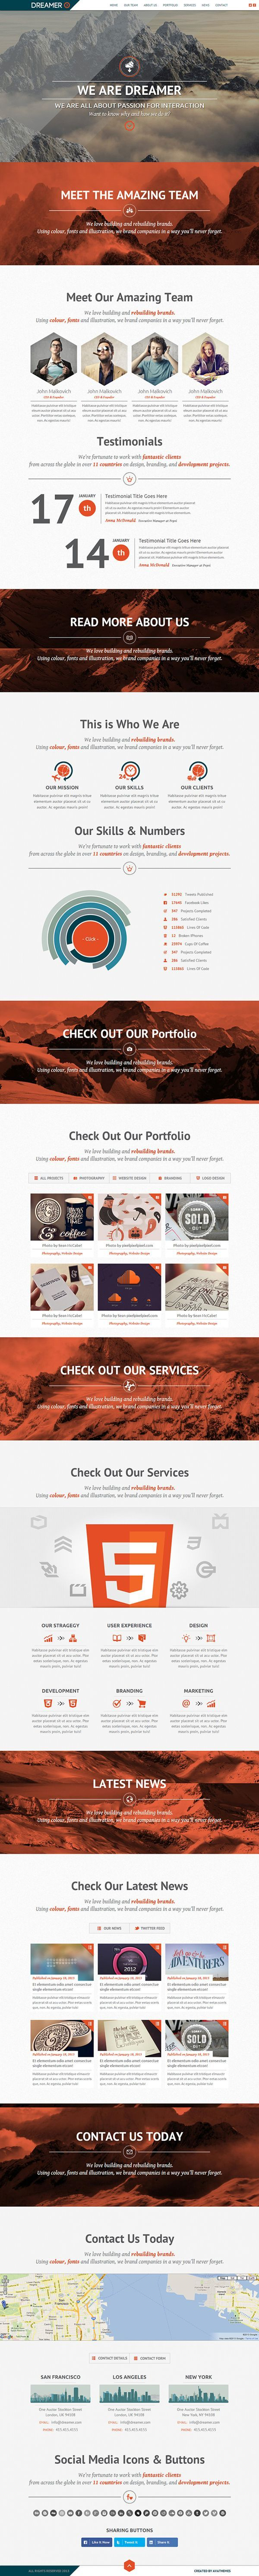 dreamer responsive one page parallax template by avathemes